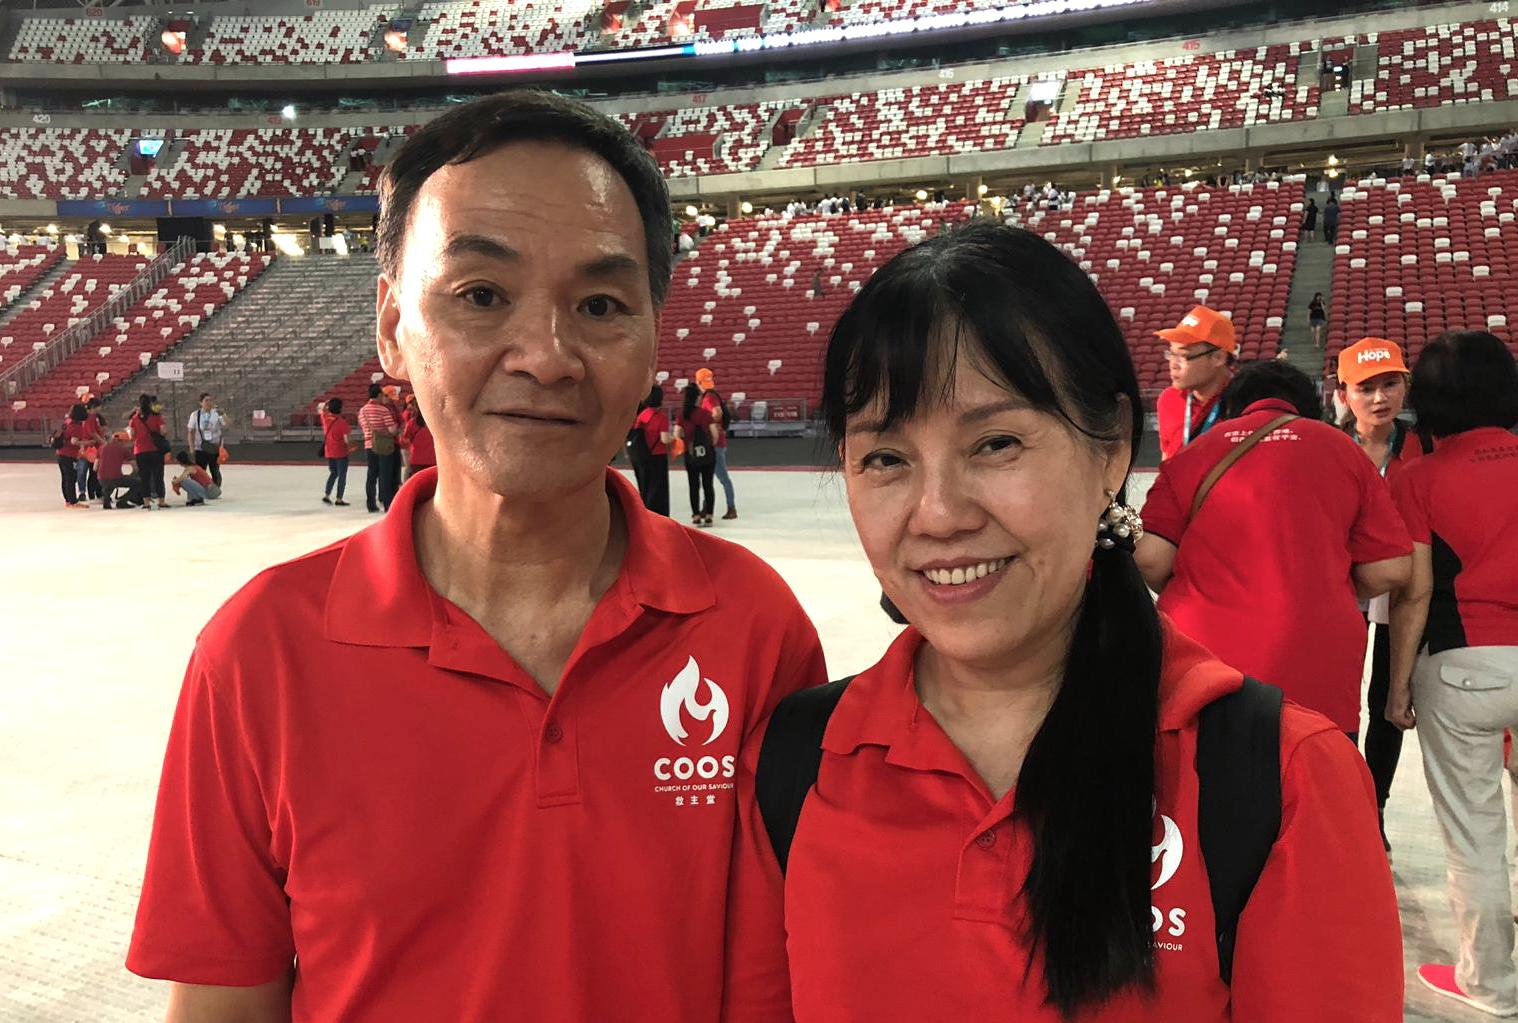 COH Chinese Eyleen Chin and her husband, Cheong Seng, took a bold step of faith to invite their friends and all three decided to receive Christ. Photo by Geraldine Tan.